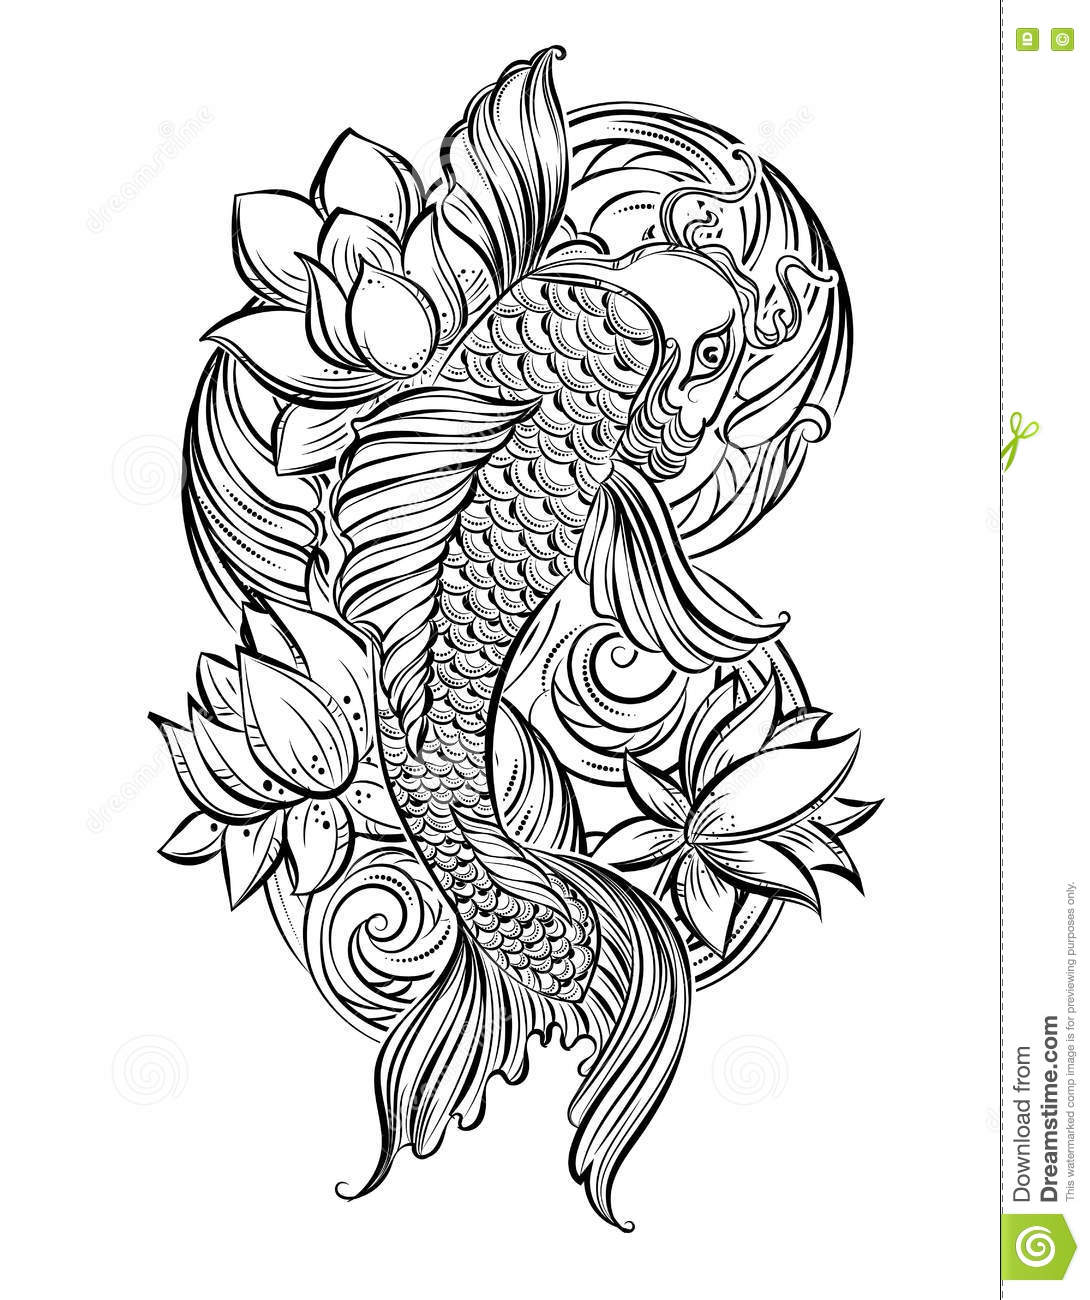 Koi carp tatoo 1 stock illustration illustration of for Koi carp pool design